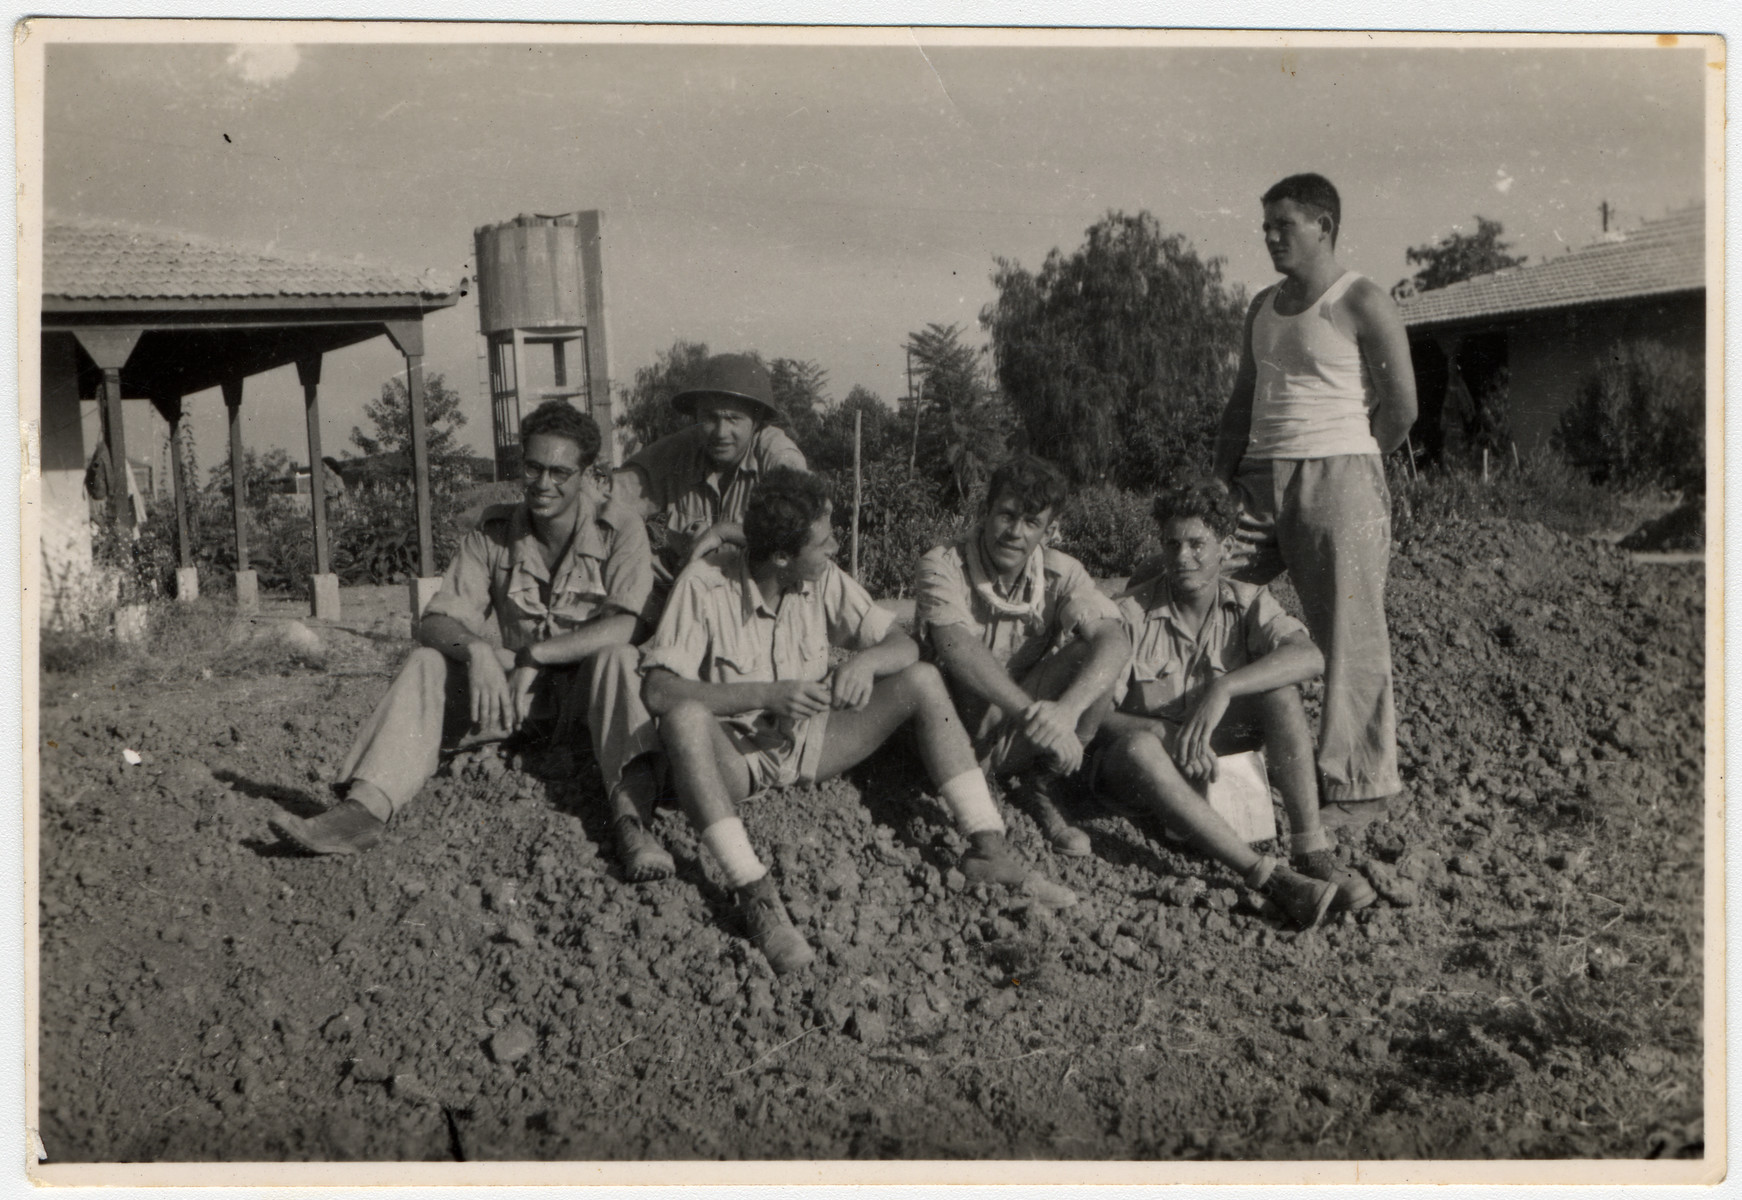 Members of a Palmach unit, most of whom had spent the war together in a children's home in Switzerland, rest on the grounds of an outpost.  Pictured from keft to right are Mordechay Frost, Tuvia Bergman, Ludwig Mayer, Werner Heilbronner (Daniel Barnea) and Danny Nir.  Danny Nir evacuated the donor, Mordechay Frost, after he was wounded.